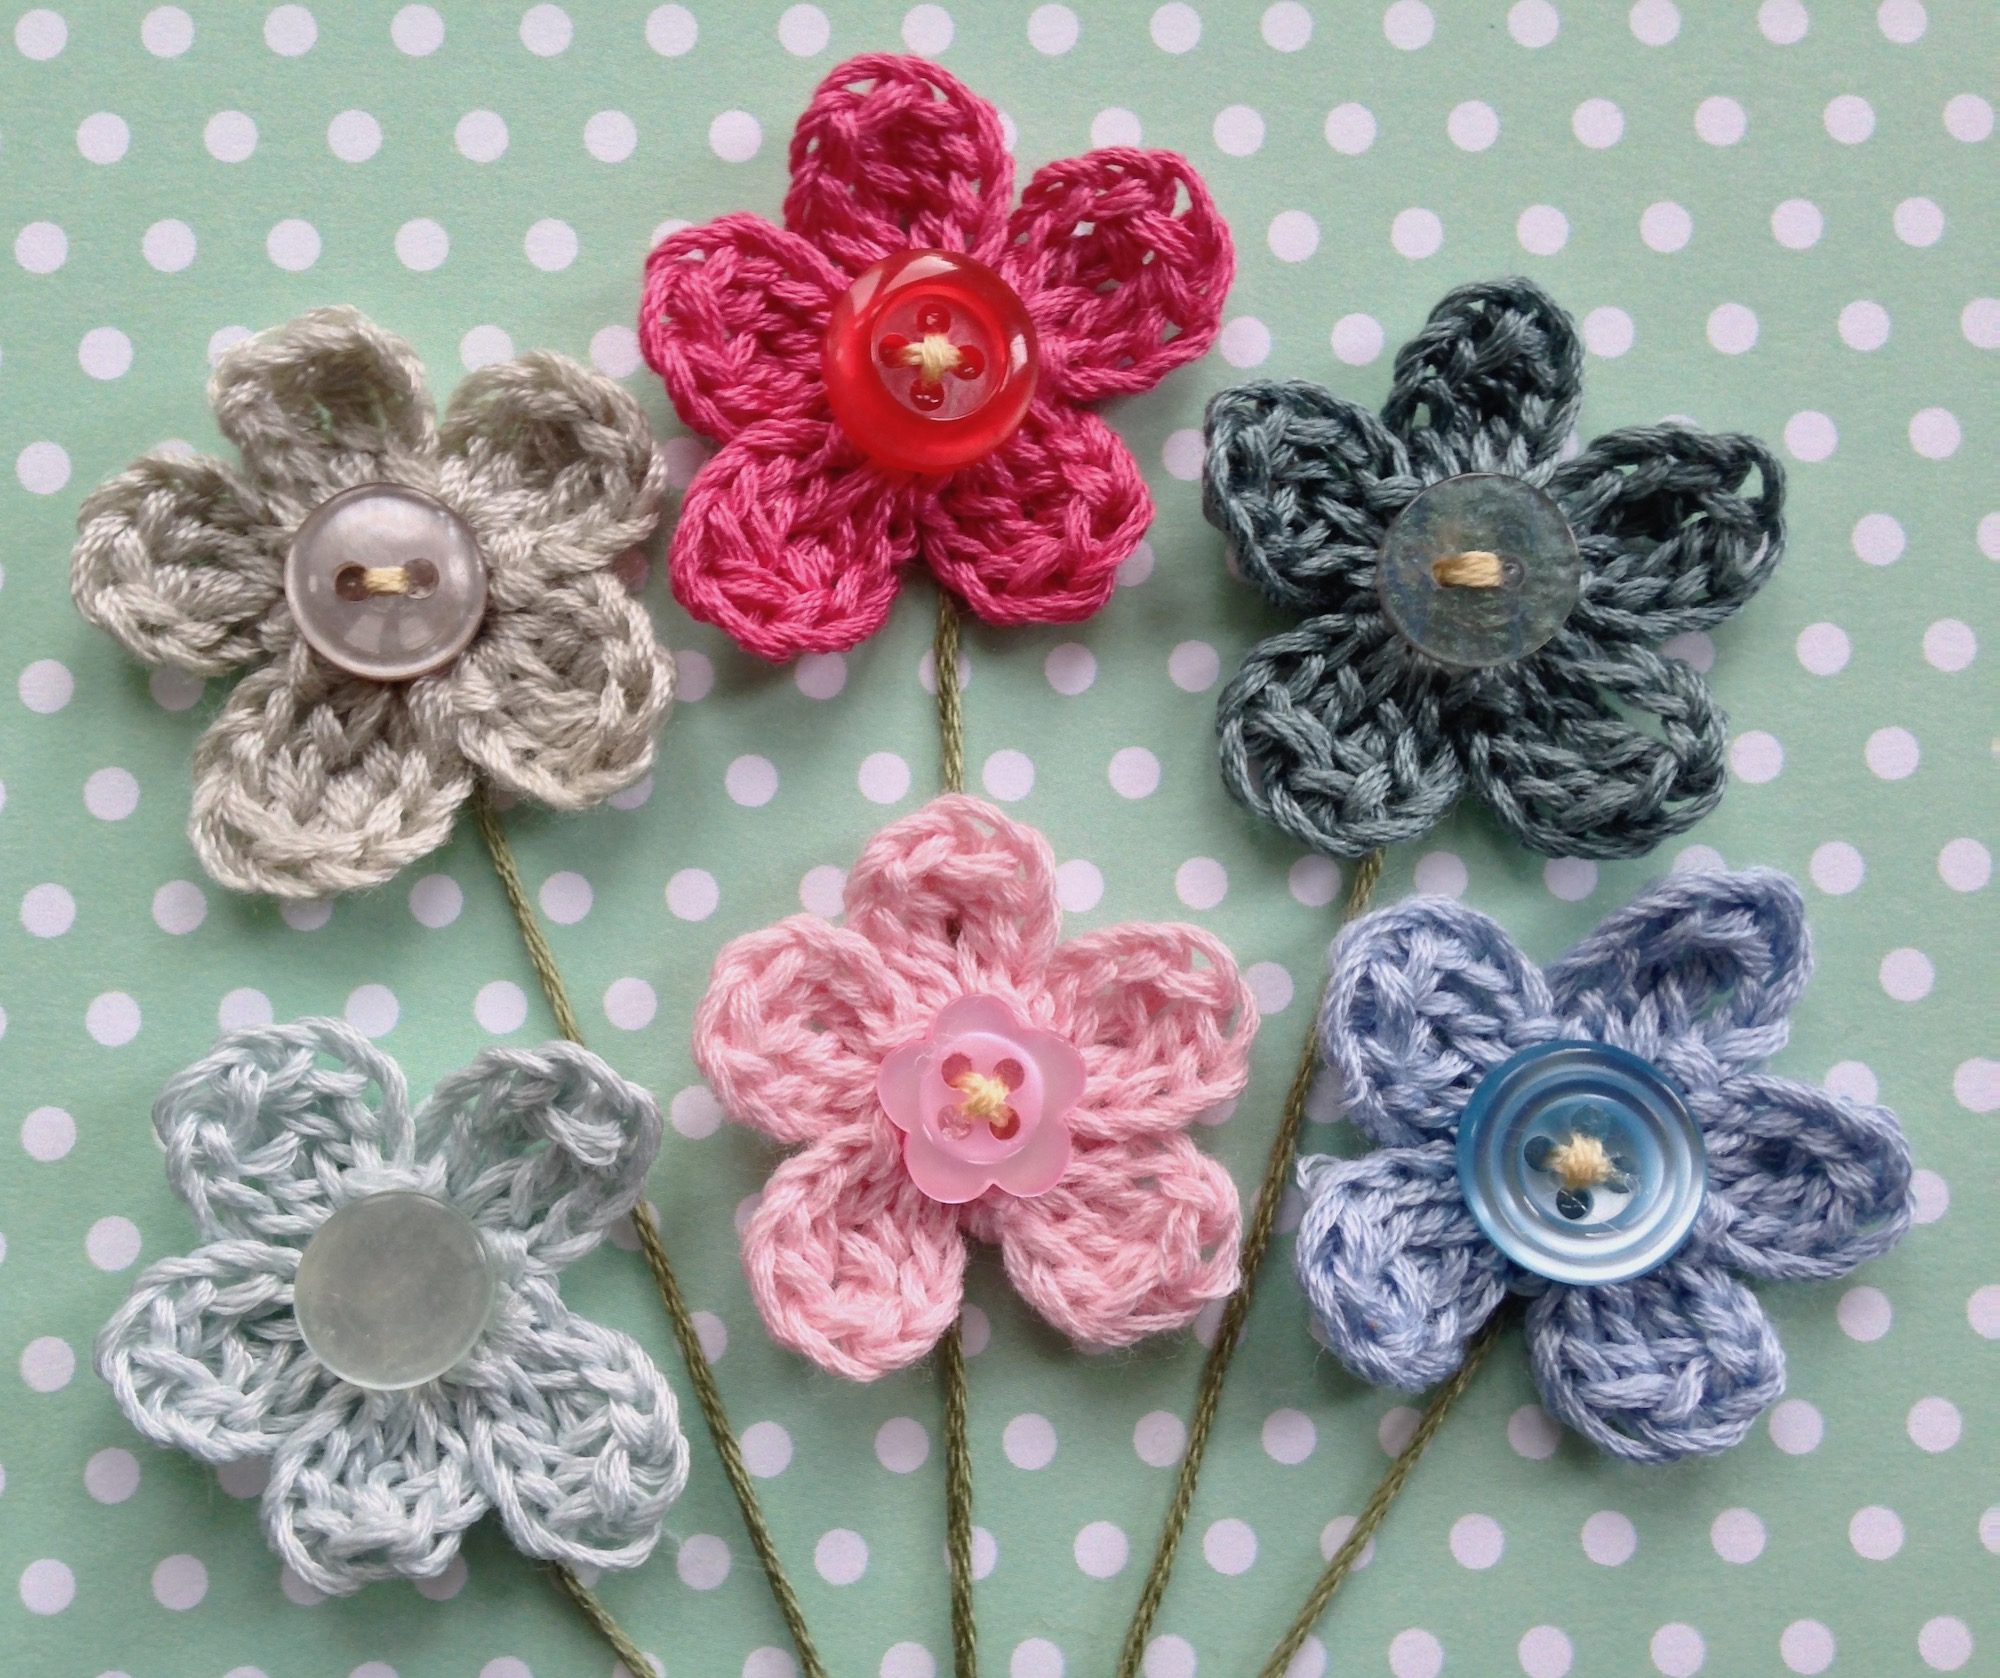 Posy of crocheted flowers greetings card.